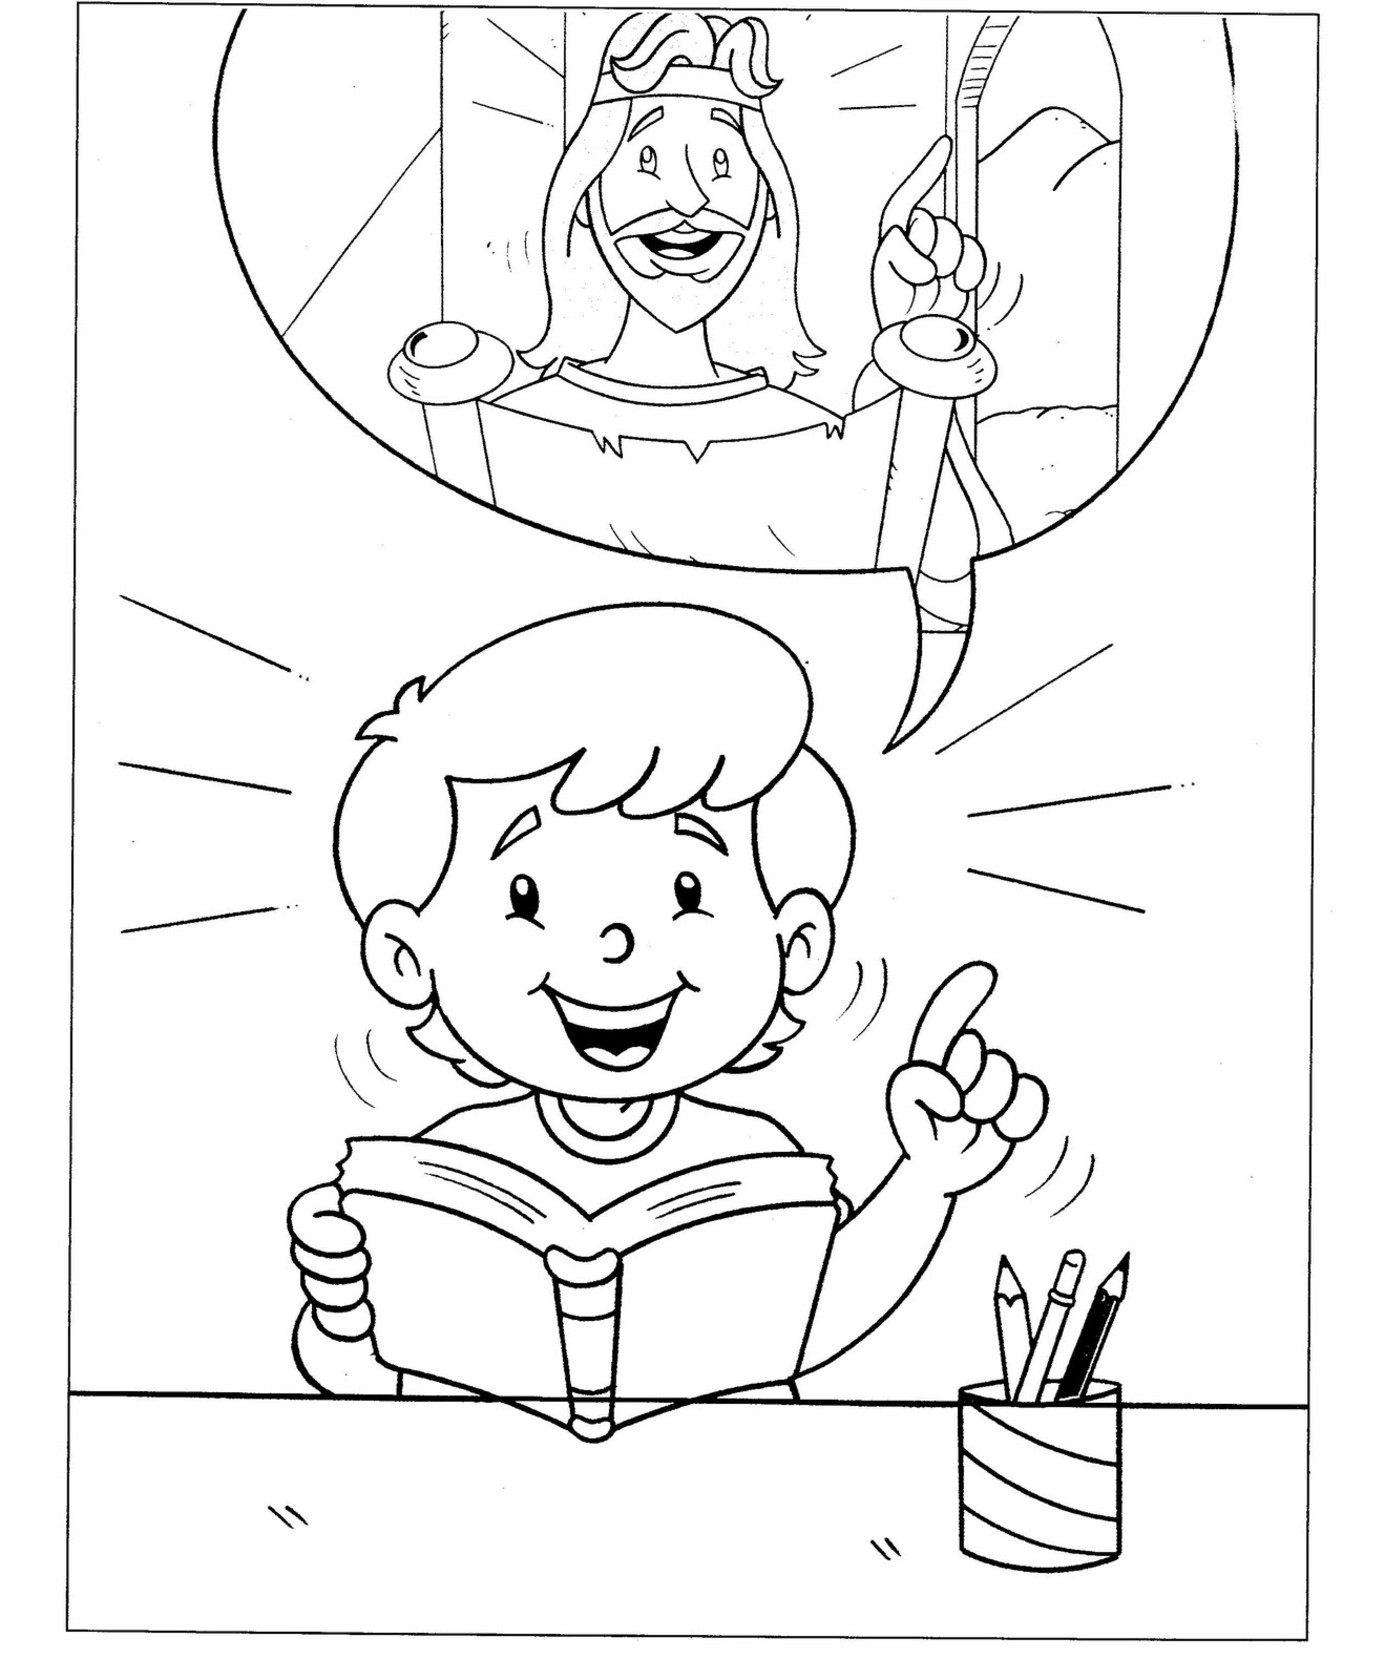 Christian Coloring Pages 3 Coloring Pages To Print Christian Coloring Pages